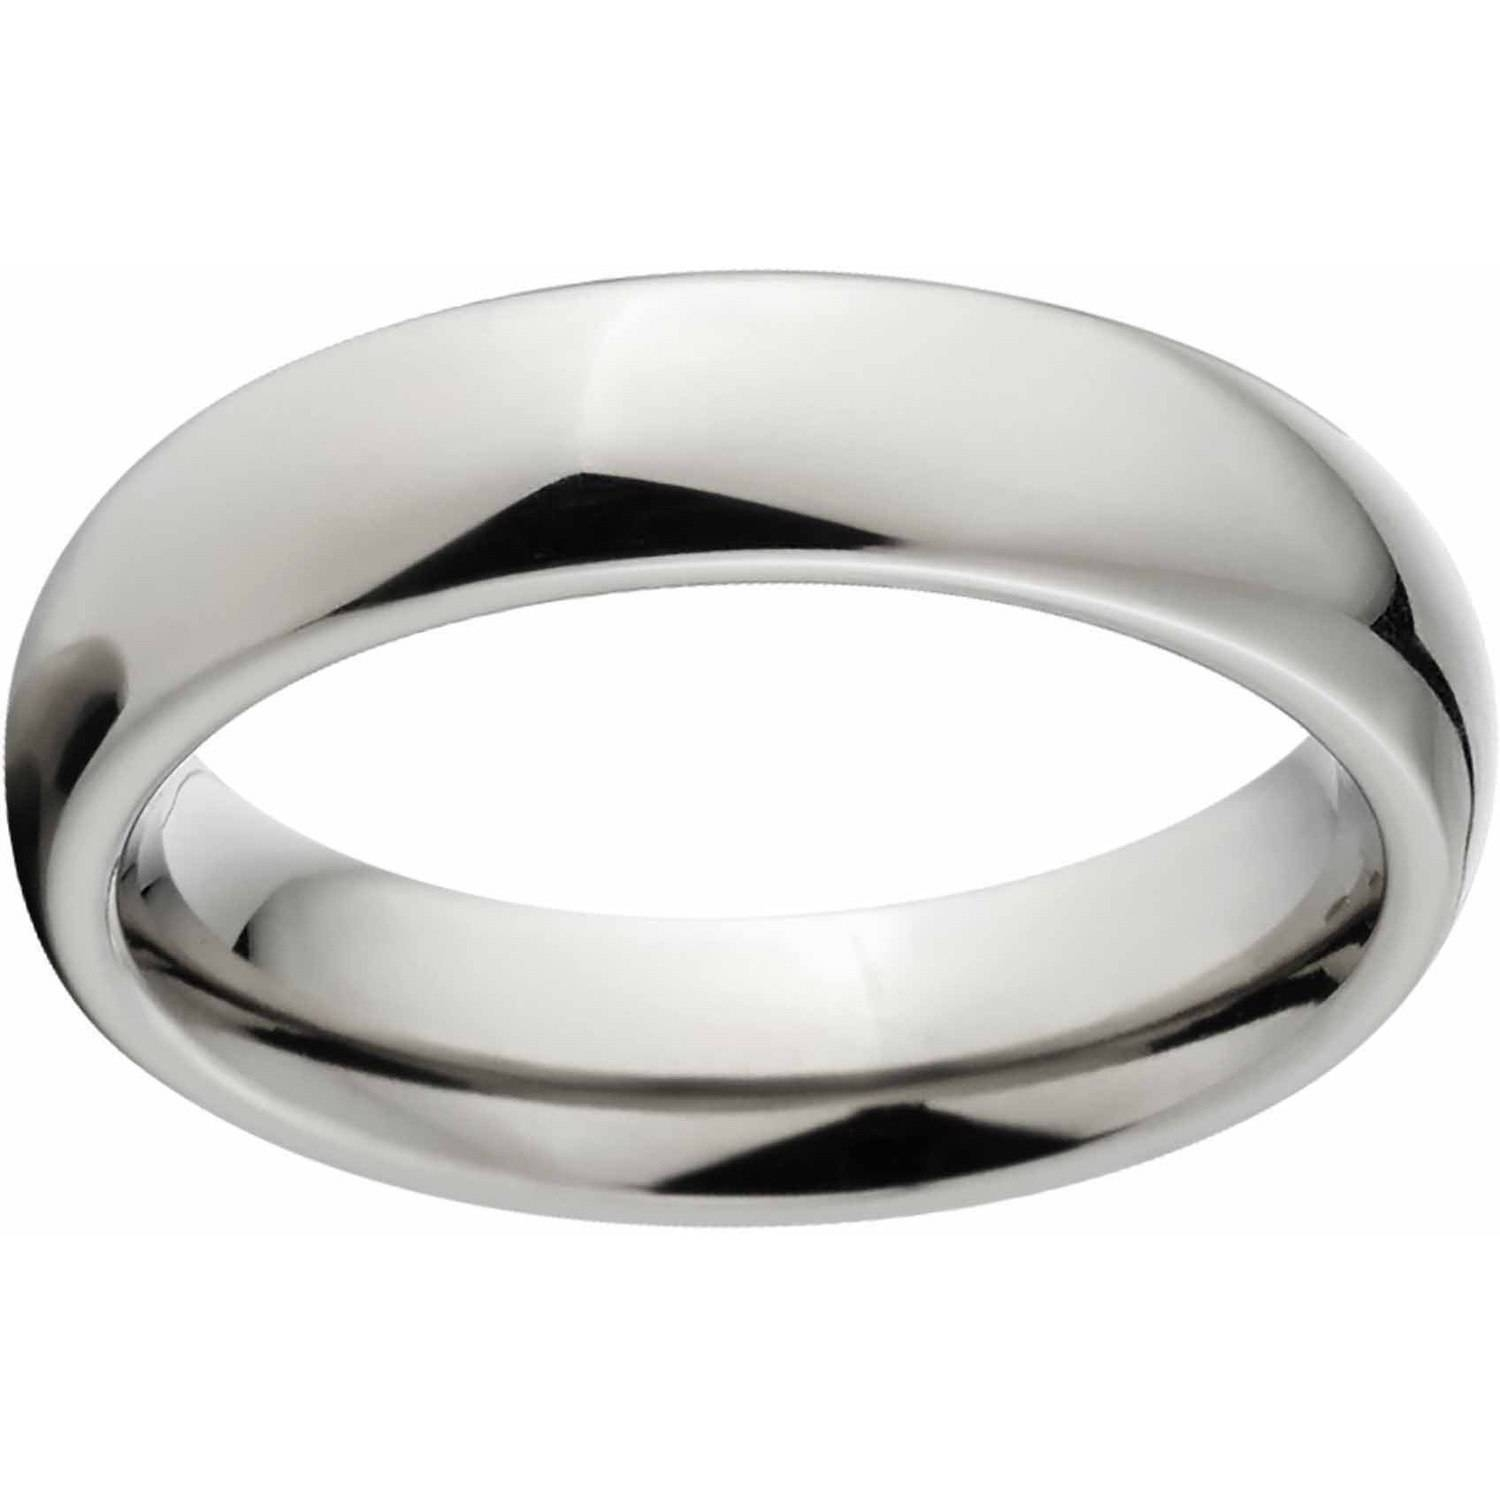 Polished 4mm Titanium Wedding Band With Comfort Fit Design In Titanium Mens Wedding Bands (View 14 of 15)